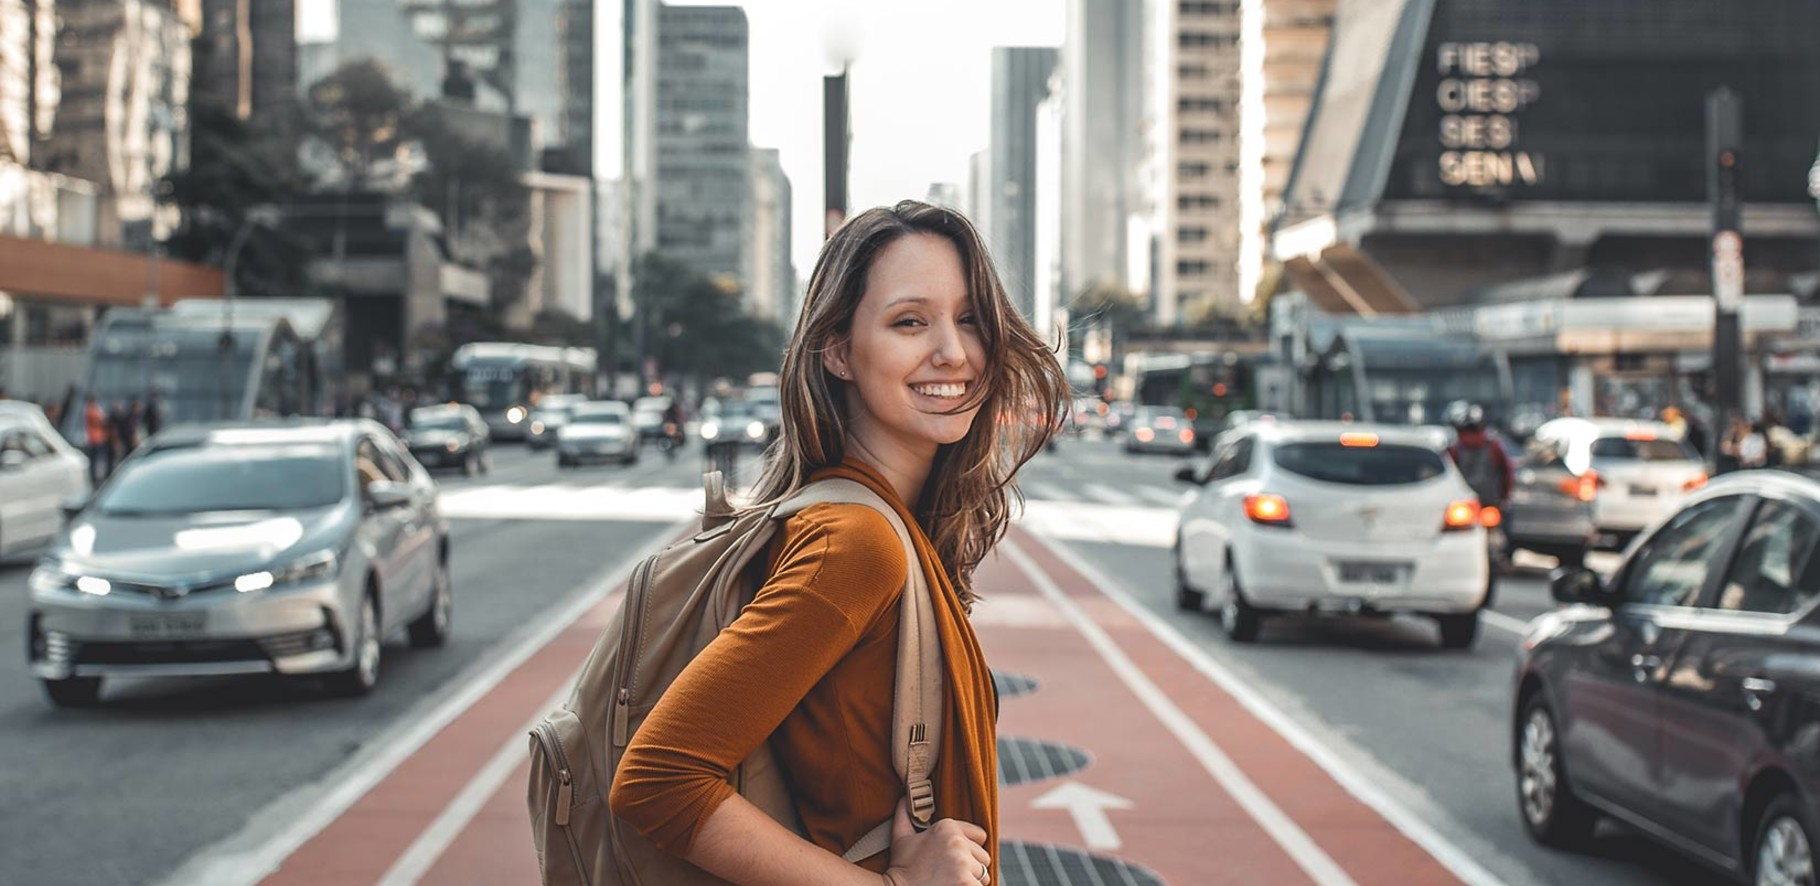 travelling girl on city street with cars